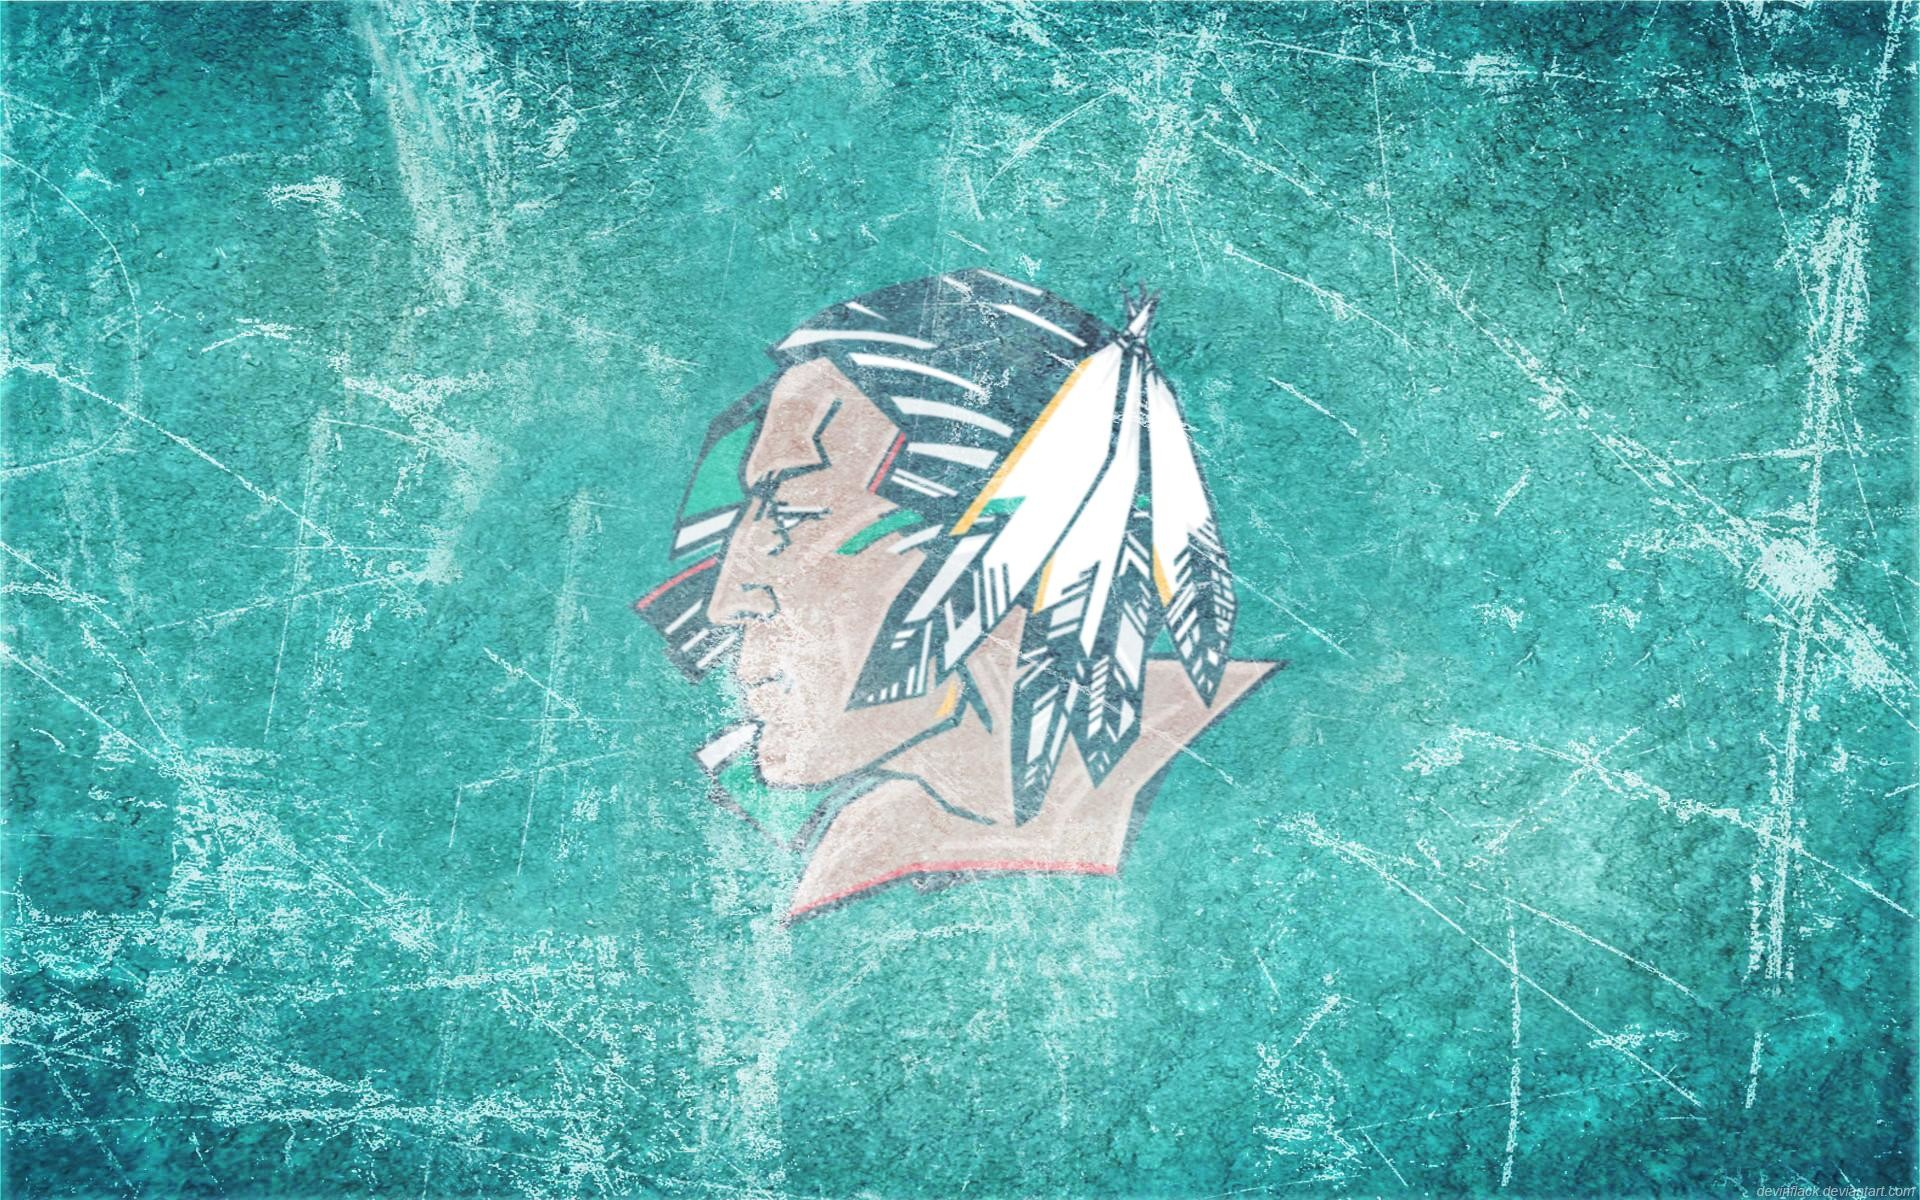 1920x1200 Fighting Sioux Wallpaper, Fighting Sioux Backgrounds for PC - HD